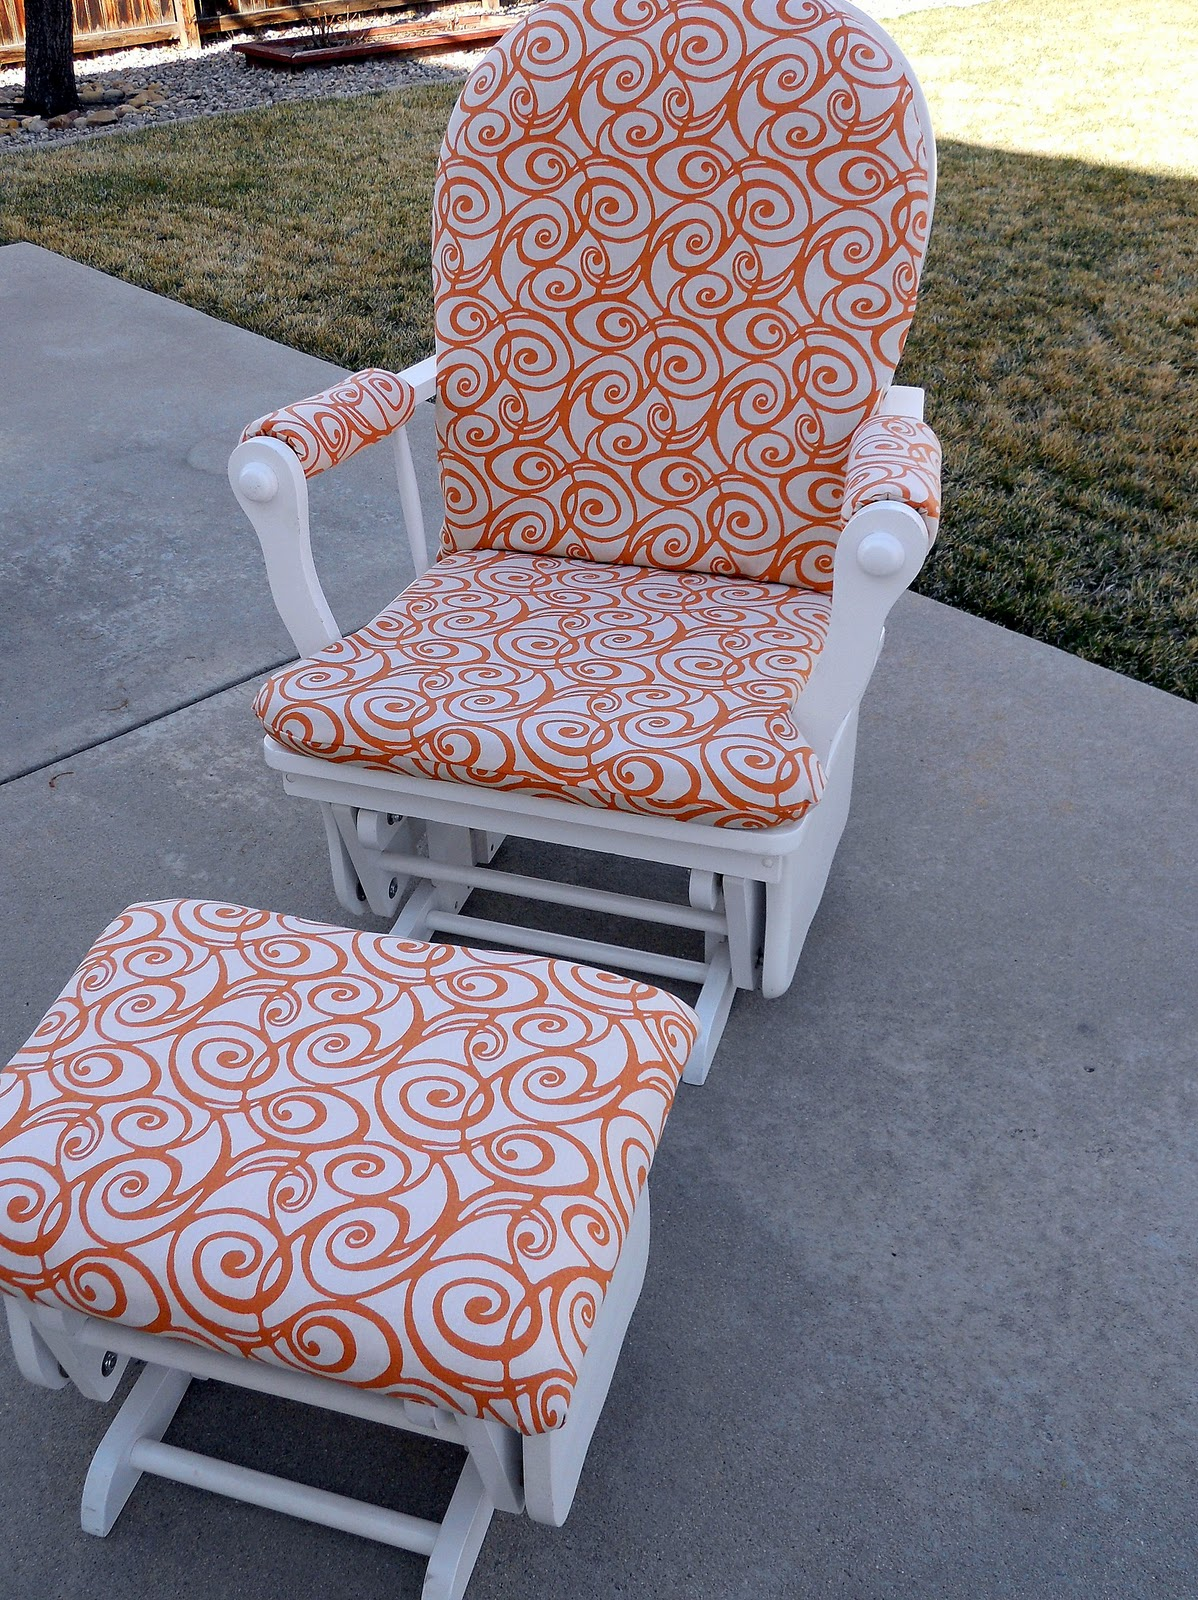 glider rocking chair cushion pattern wooden chairs second hand just another hang up from slightly used to almost new